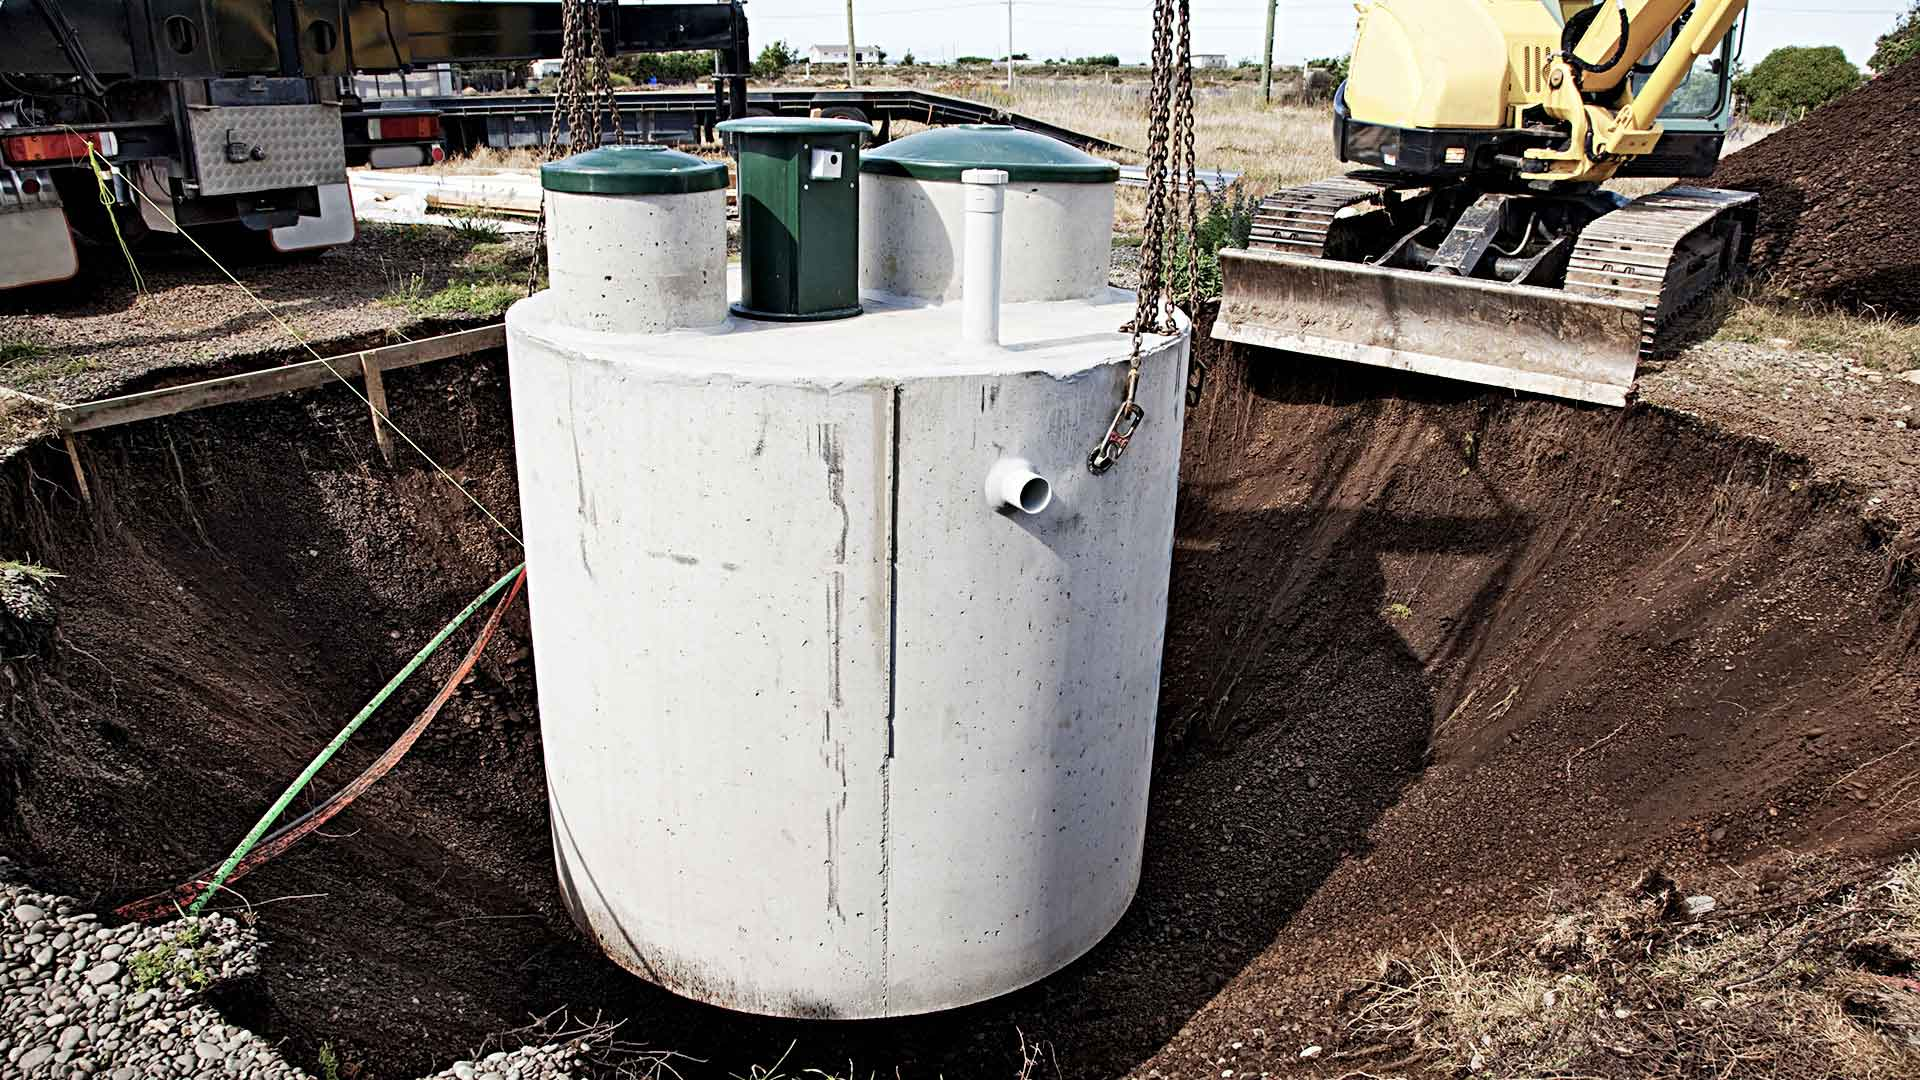 Corpus Christi Septic Cleaning, Septic Tank Services and Septic Tank Pumping